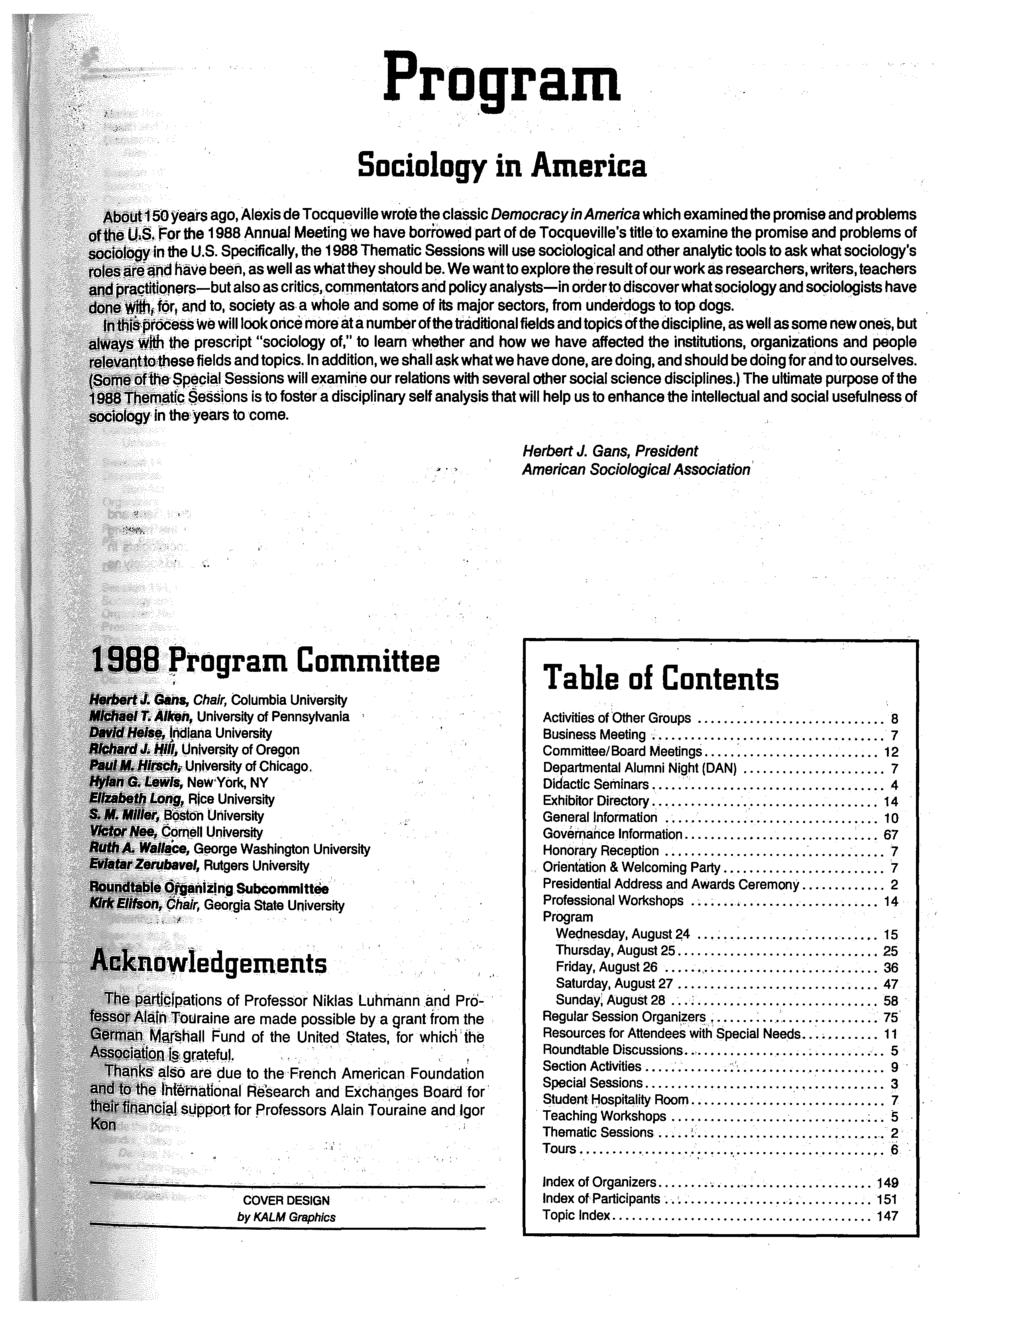 Program Sociology in America ~~ouh 50 years ago, Alexis de Tocqueville wrote the classic Democracy in America which examined the promise and problems ~f1h~ u.